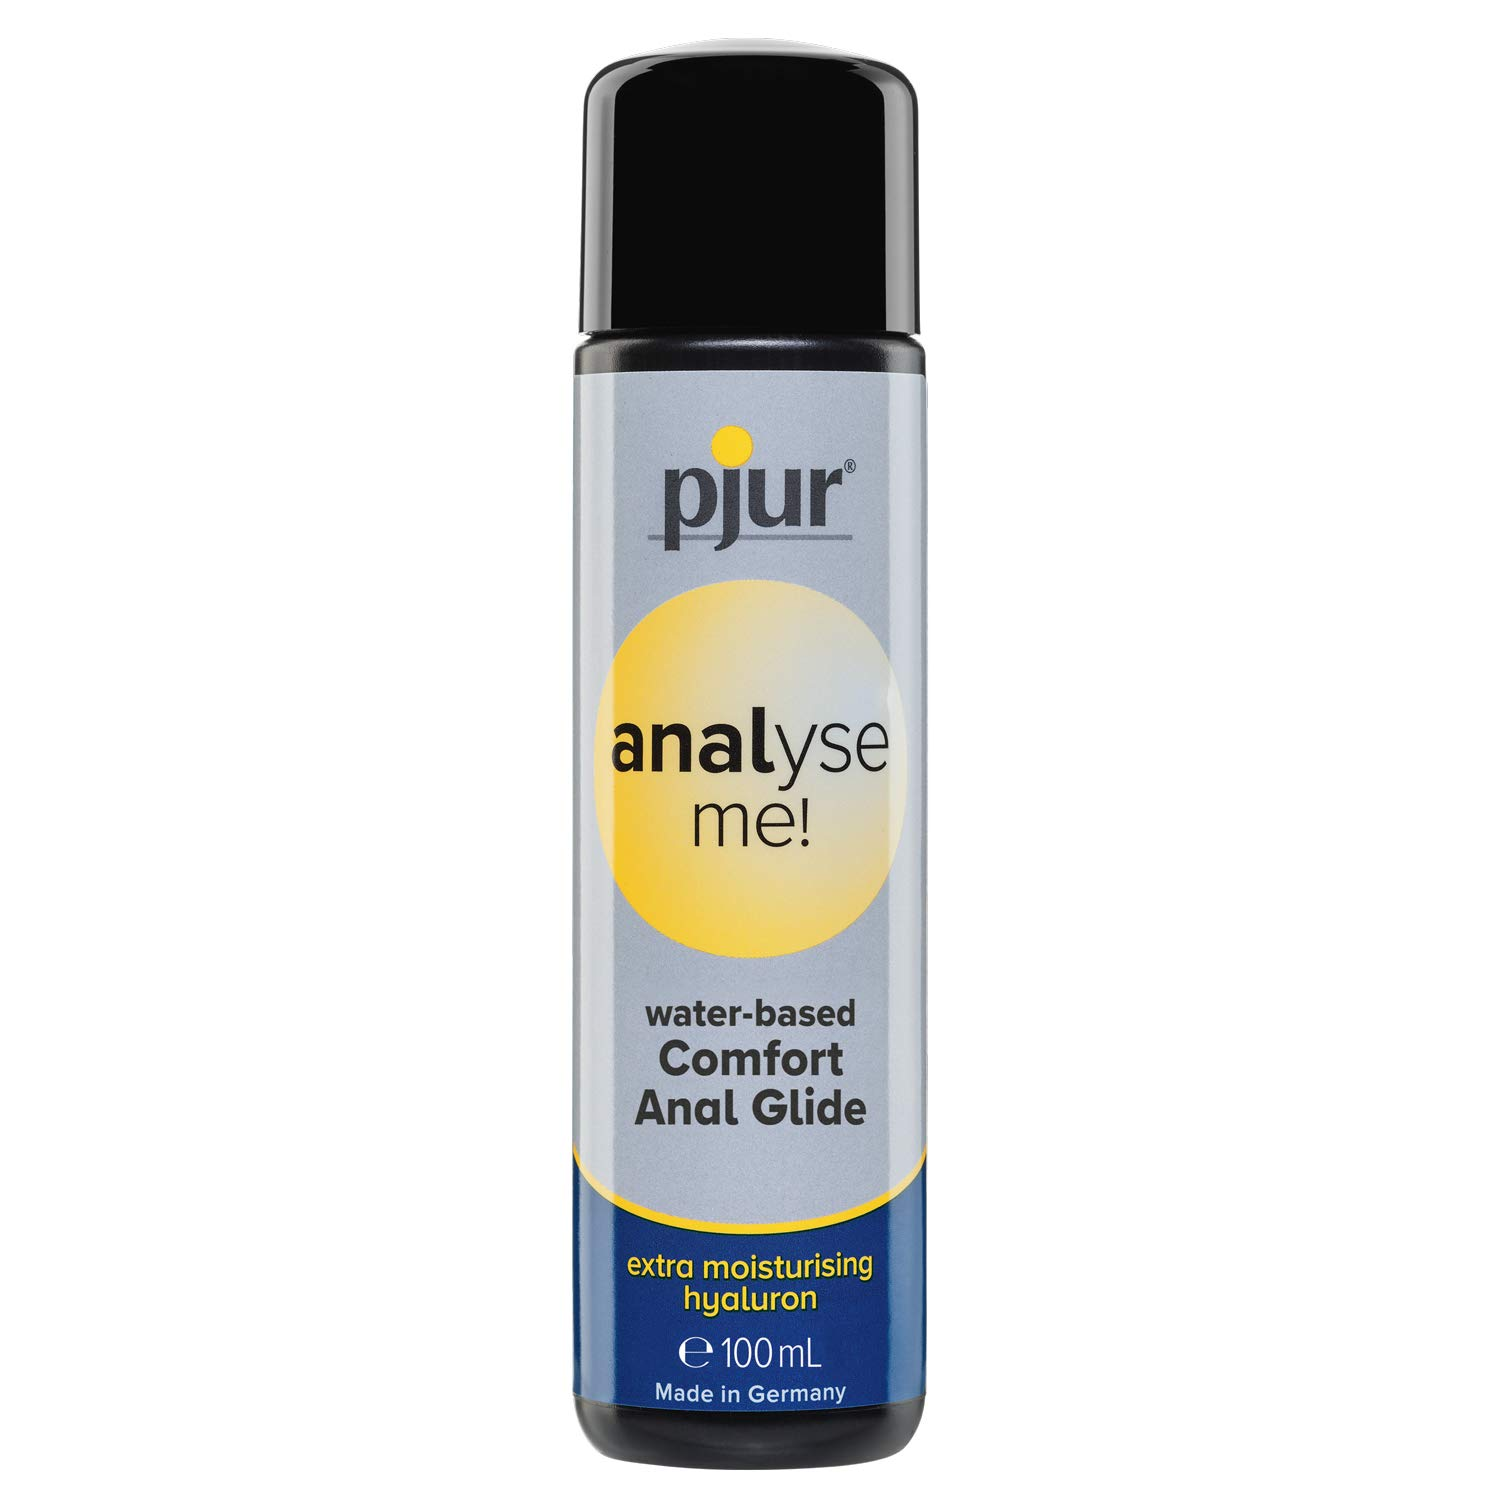 pjur Analyse Me Water Based Special Lubricant for Anal Sex Unisex Personal Lube | 3.4 fl.oz/100ml